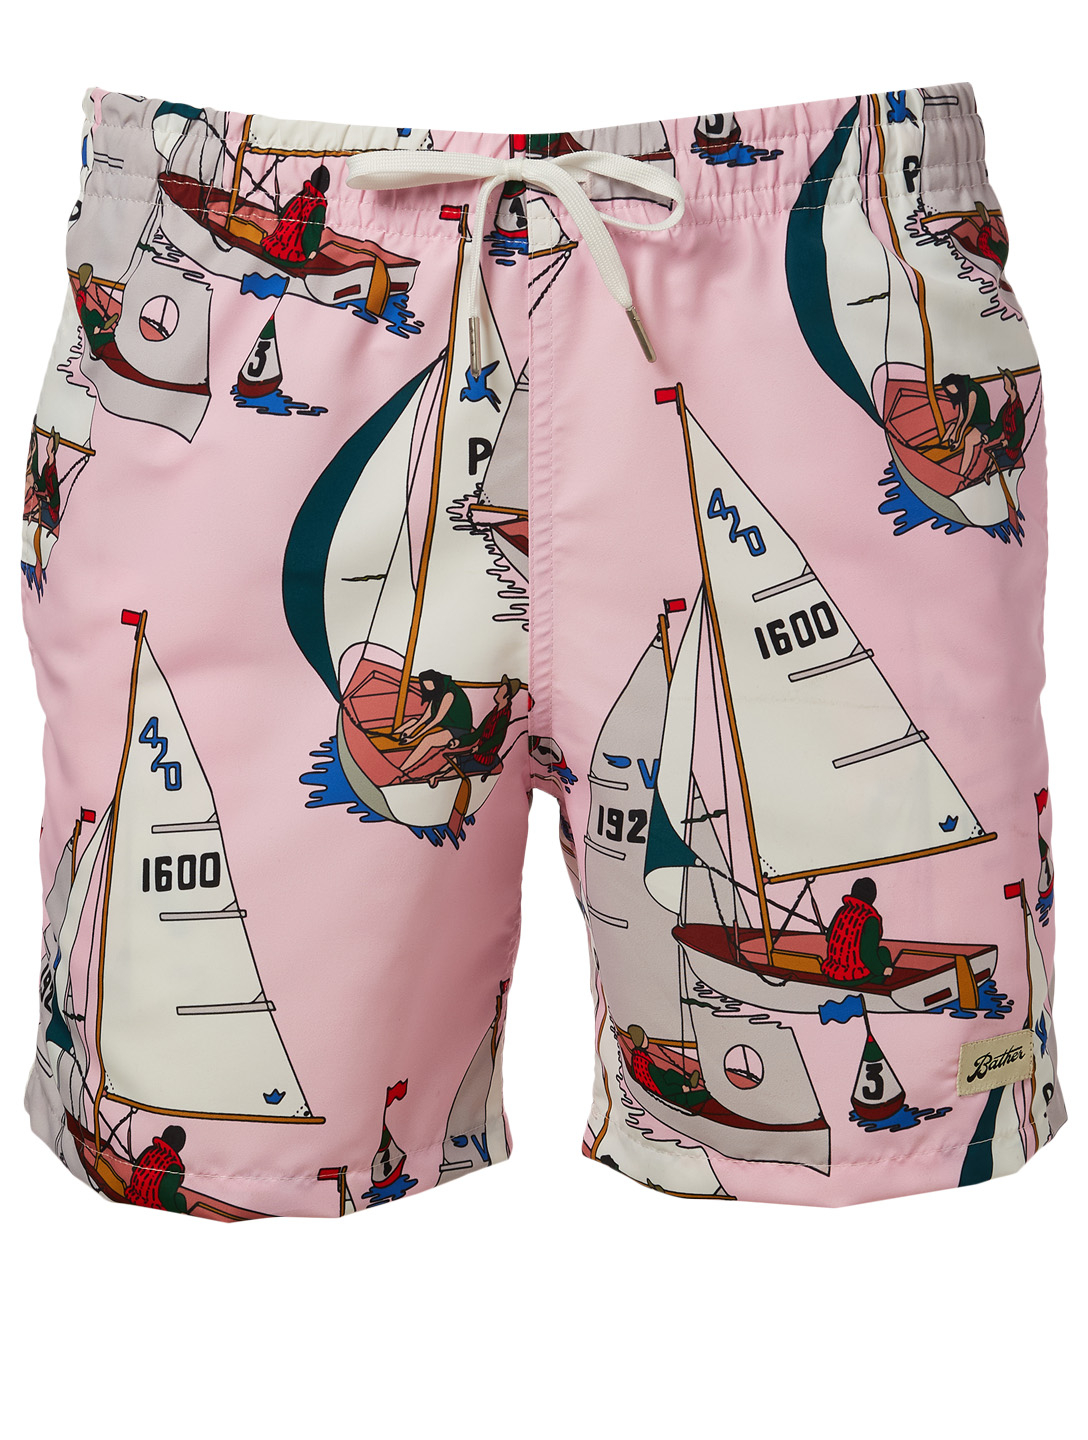 BATHER Afternoon Sail Swim Shorts H Project Pink